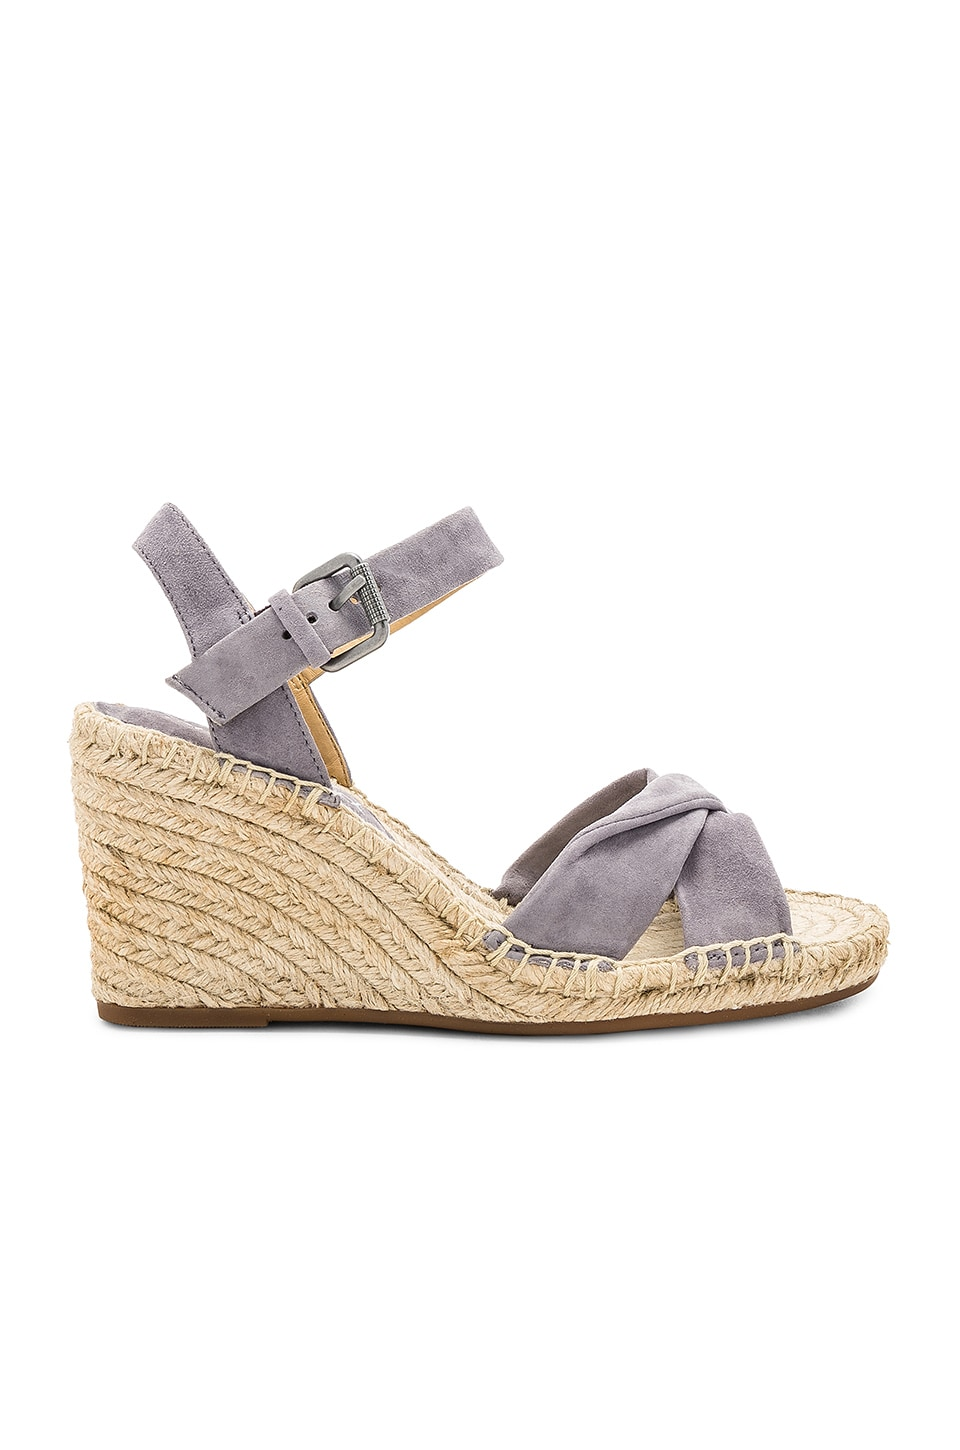 75ee80d14a3f Splendid Fairfax Espadrille Wedge Sandal In Gray